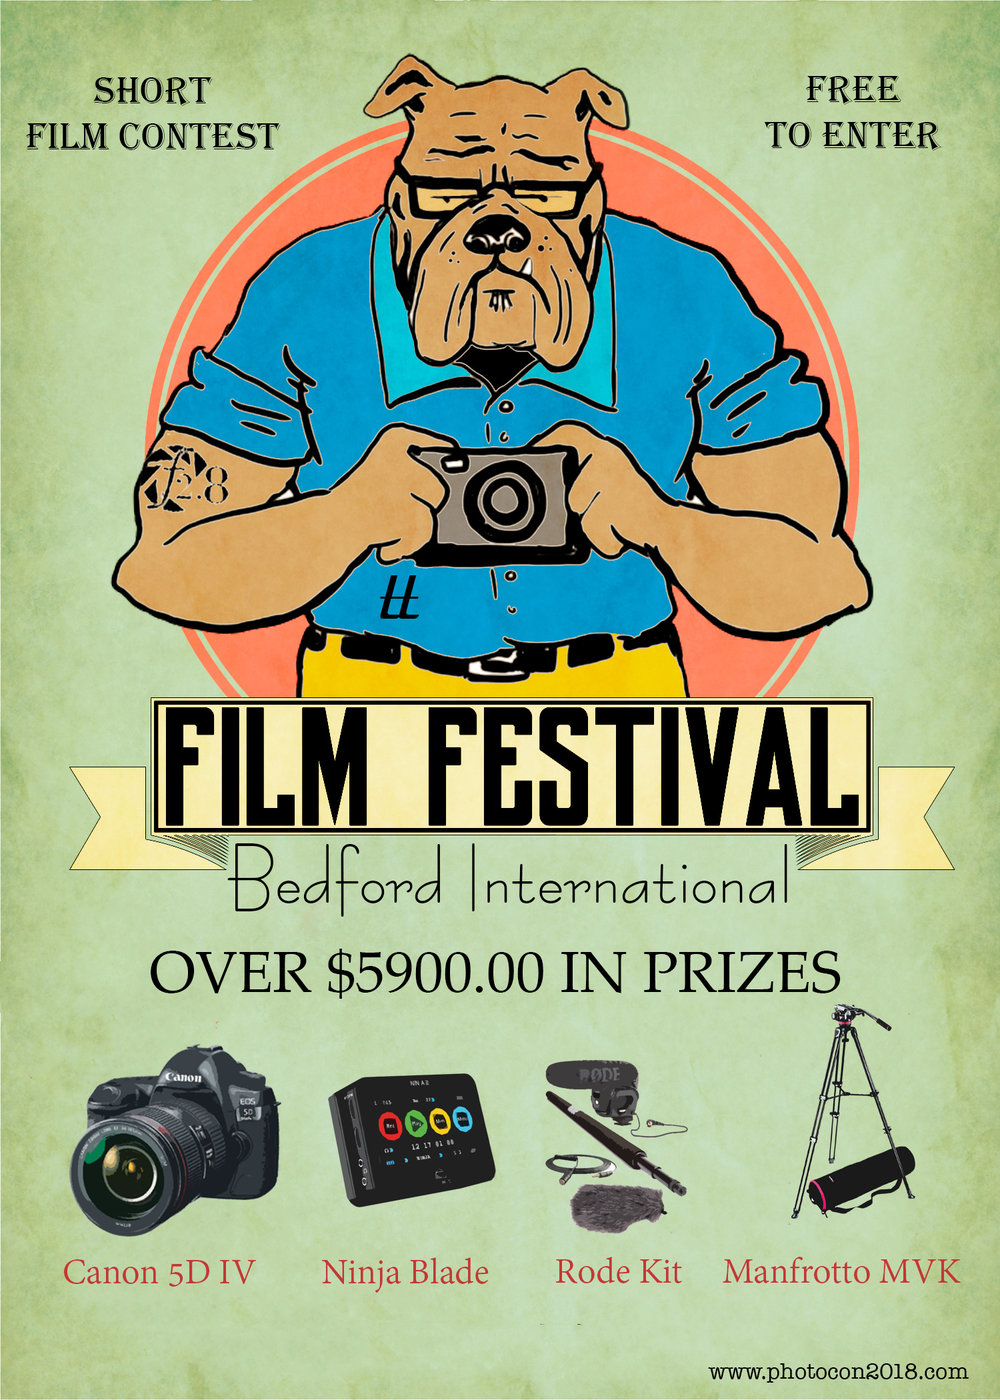 - 1. Submit an idea (any genre) for your masterpiece via Script, Storyboard or Video Interview for FREE 2. Qualify as one of 15 finalists and Bedford Camera will loan you a Canon 5D MKIV 24-105 Kit and a complete Rode Mic System 3. Create your masterpiece in its entirety in 96 hours (including BTS footage) 4. Attend 2nd Annual Bedford international Film Festival October 27, 2018 at the Tower Hotel OKC 5. Grand Prize Winner receives $5900.00 in Prizes including Canon 5D MK IV, Rode Microphone Kit, Atomos Ninja Blade and a Manfrotto Tripod.